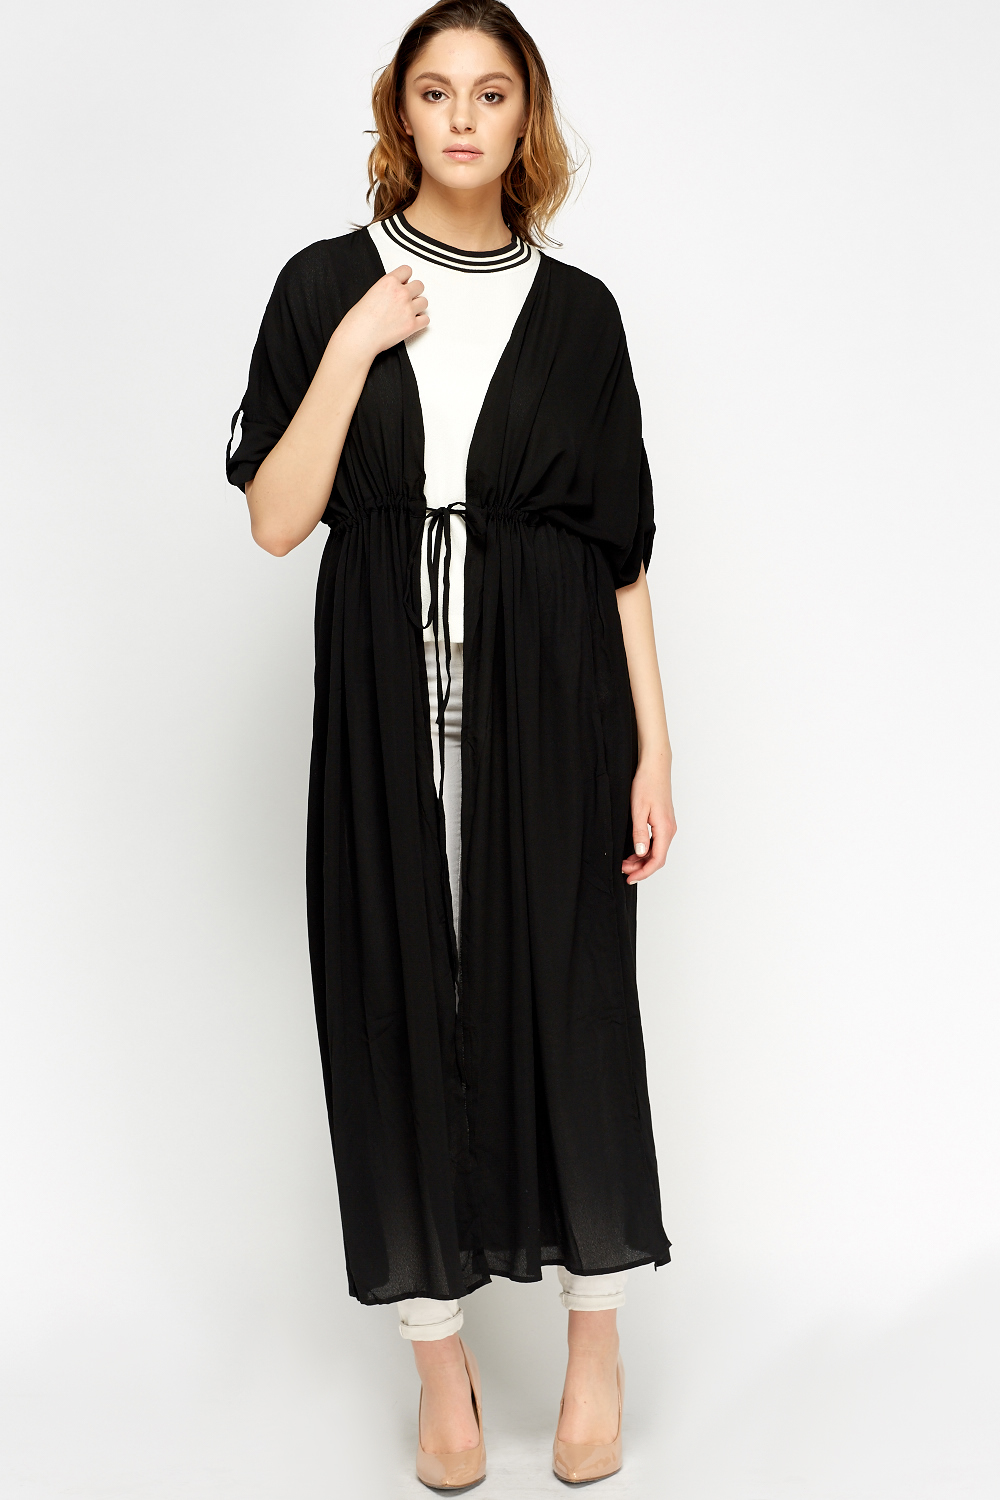 Slit Side Long Sheer Cardigan - Just £5